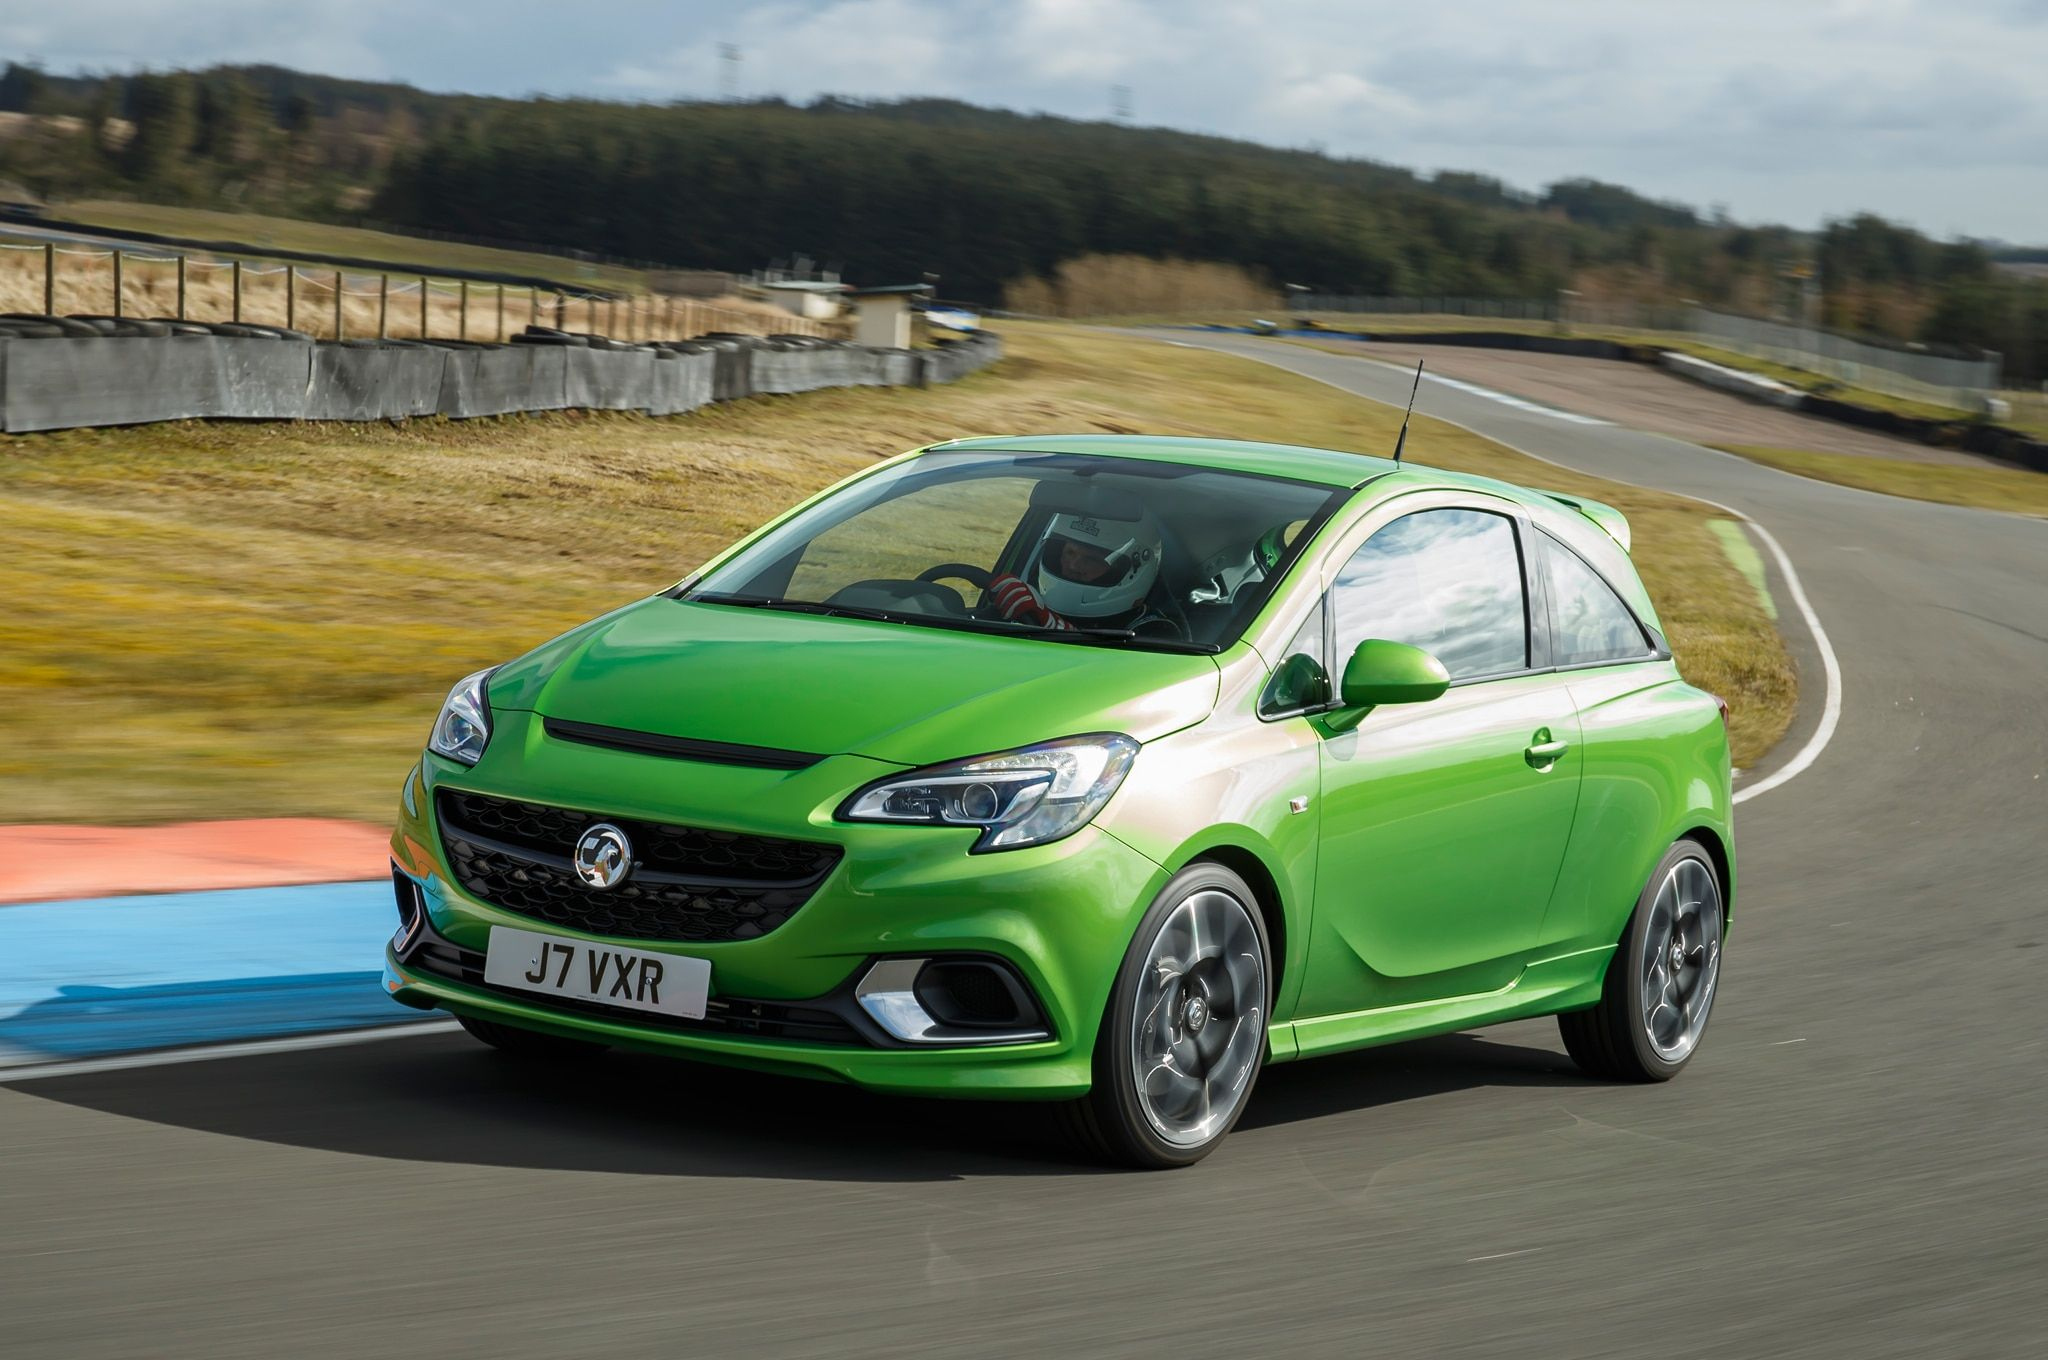 88 The Best 2020 VauxhCorsa VXR Specs